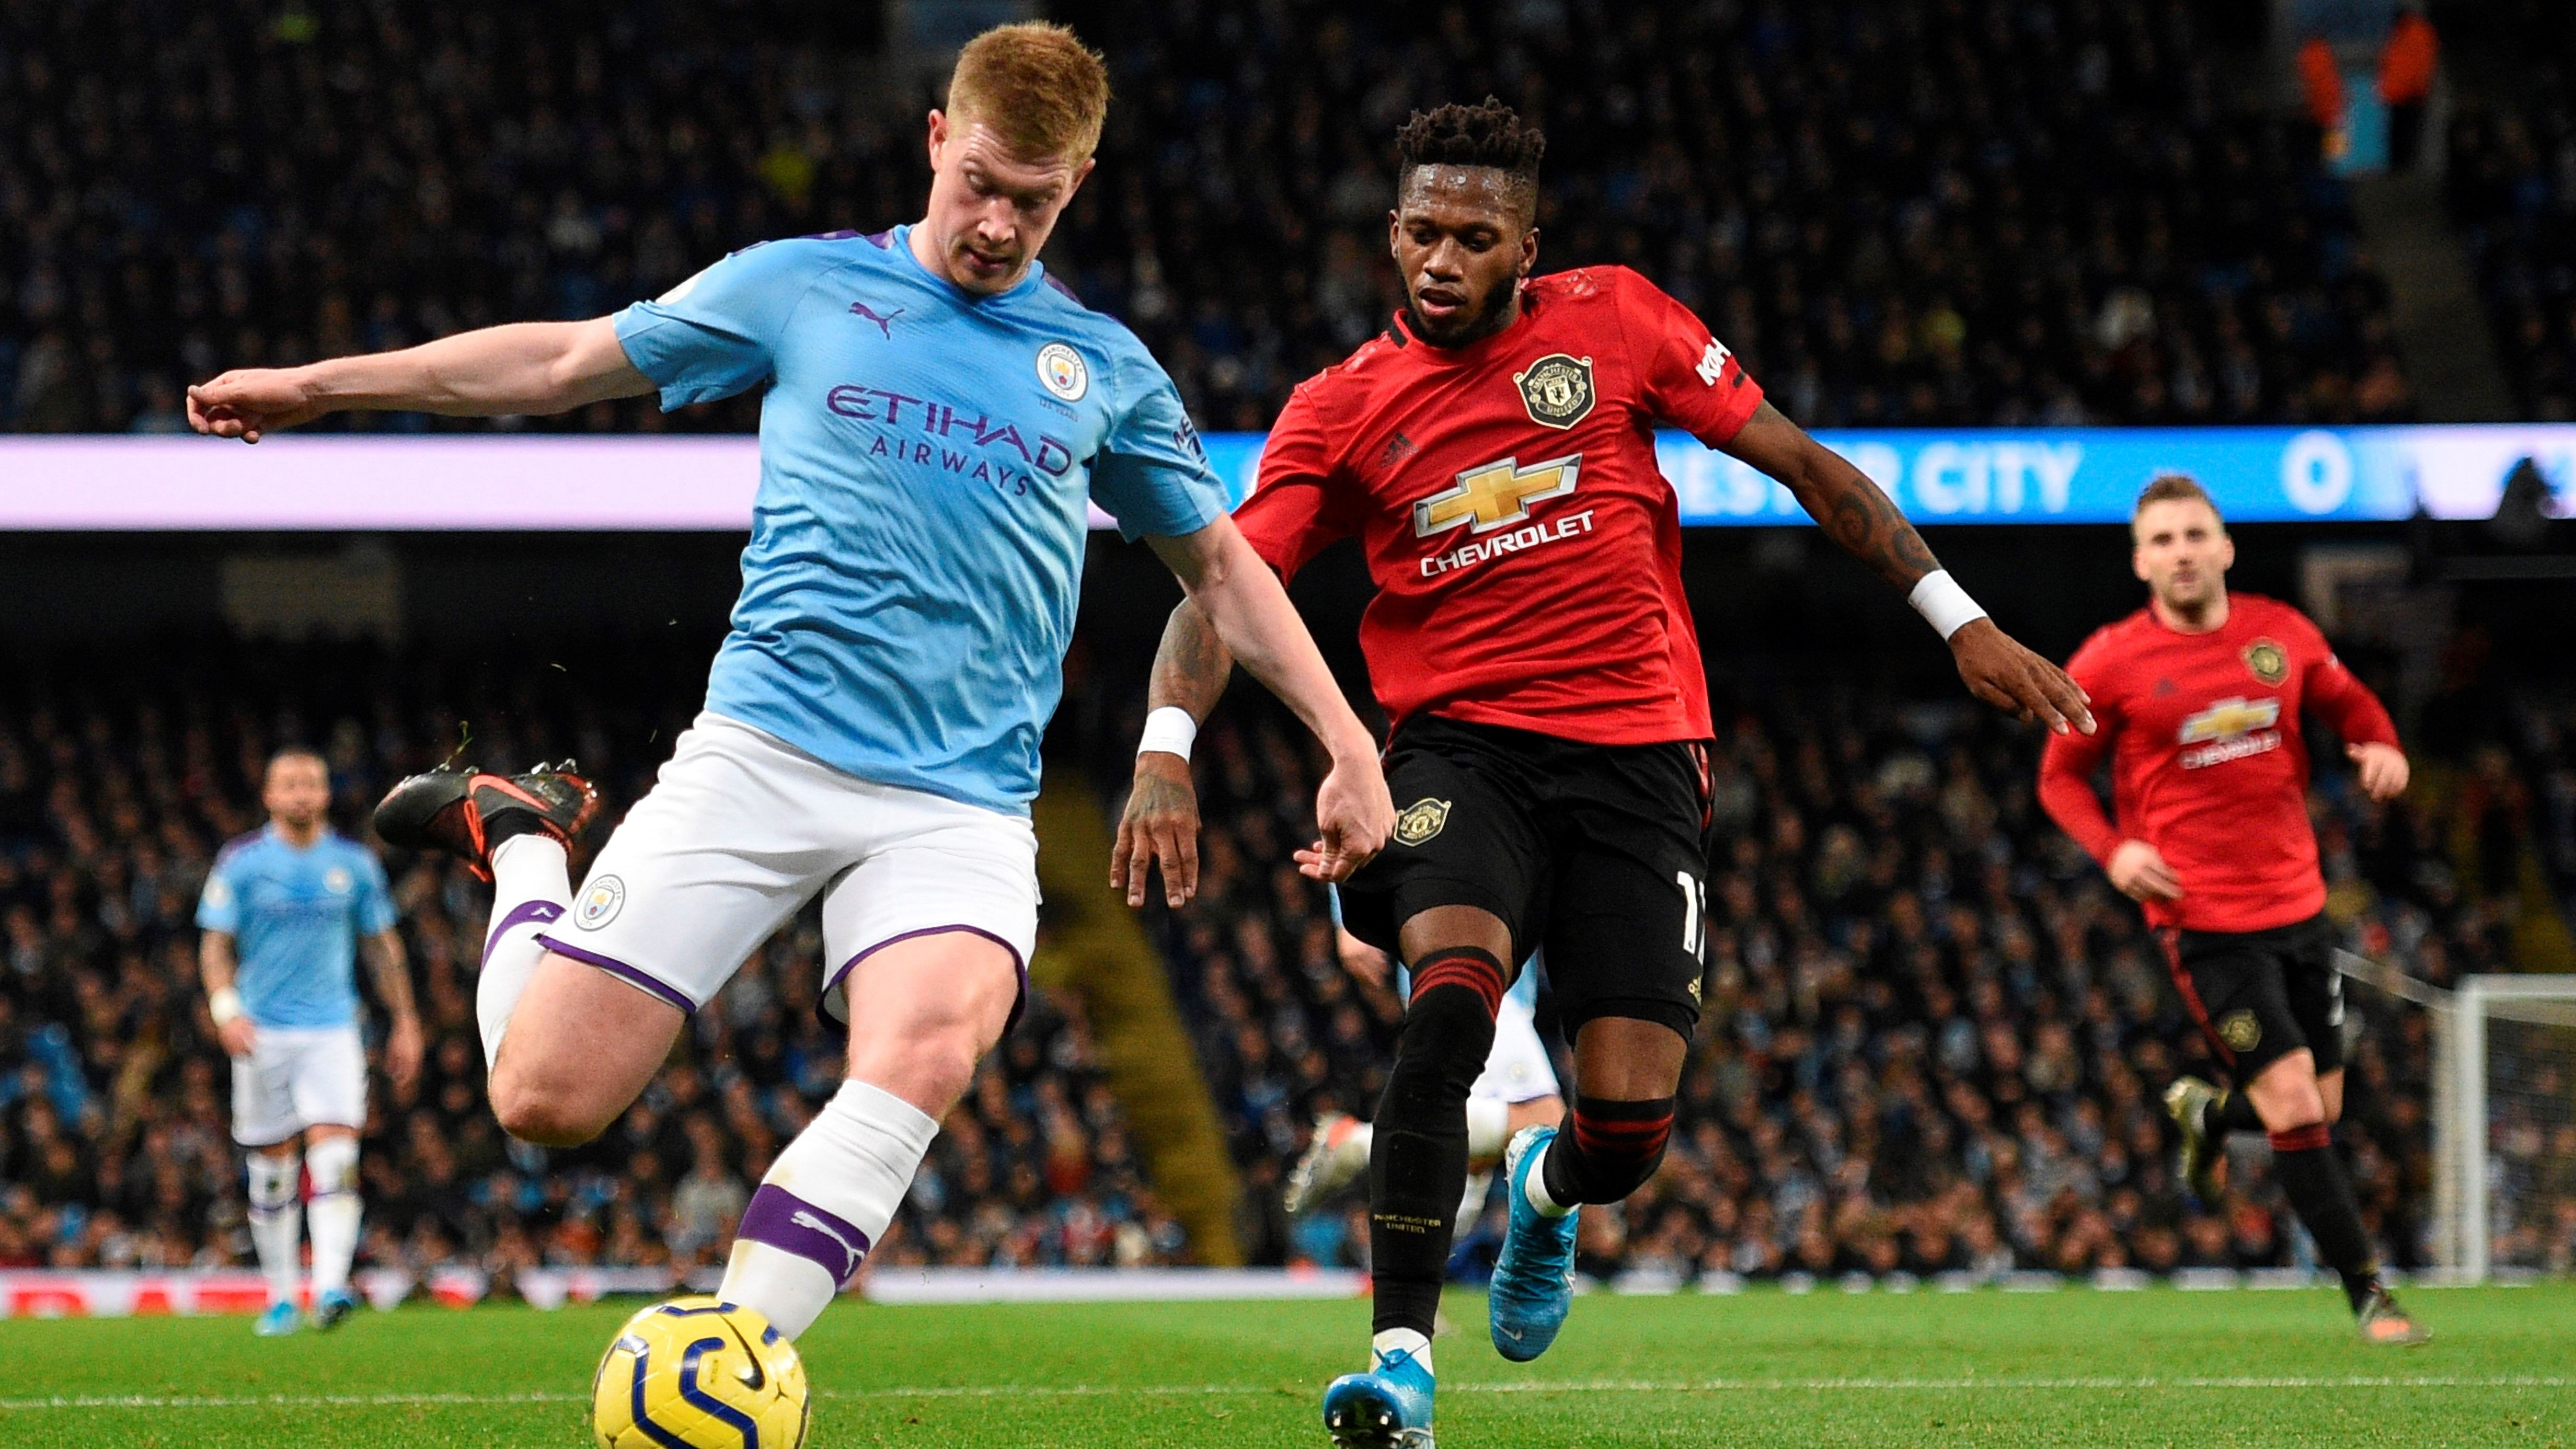 Man United vs Man City live stream how to watch the